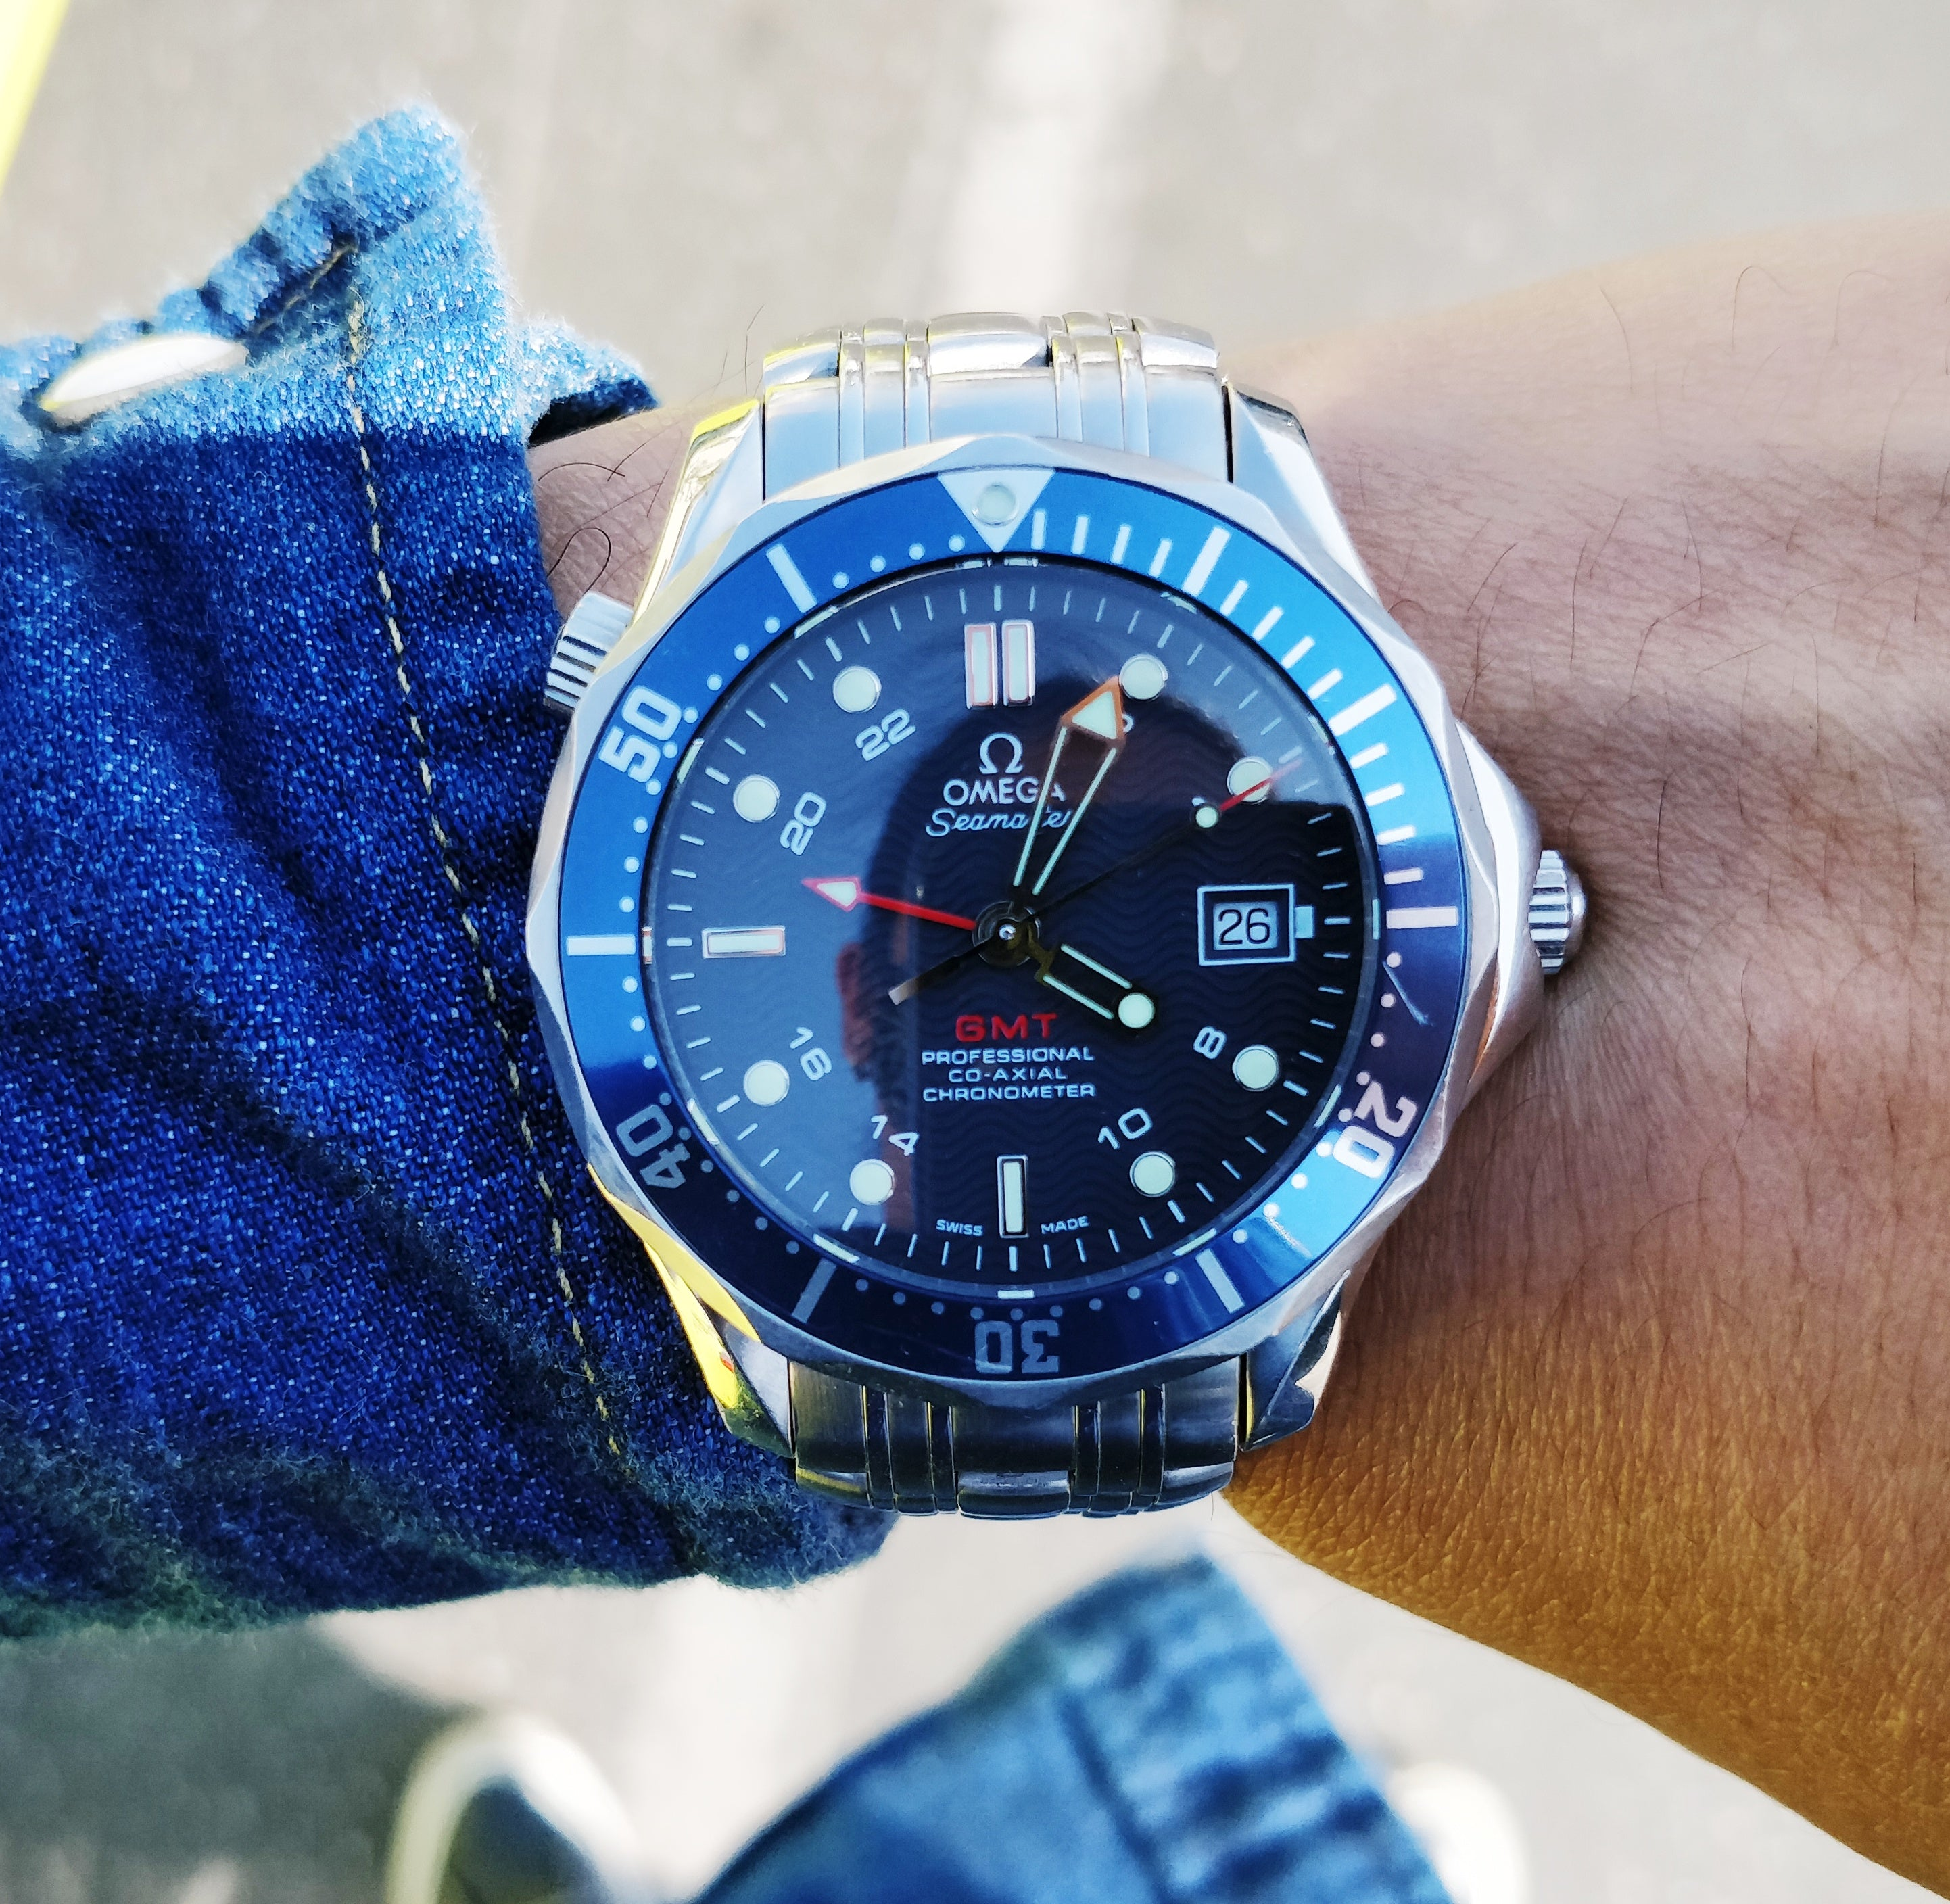 Omega Seamaster Professional 300m GMT Diver